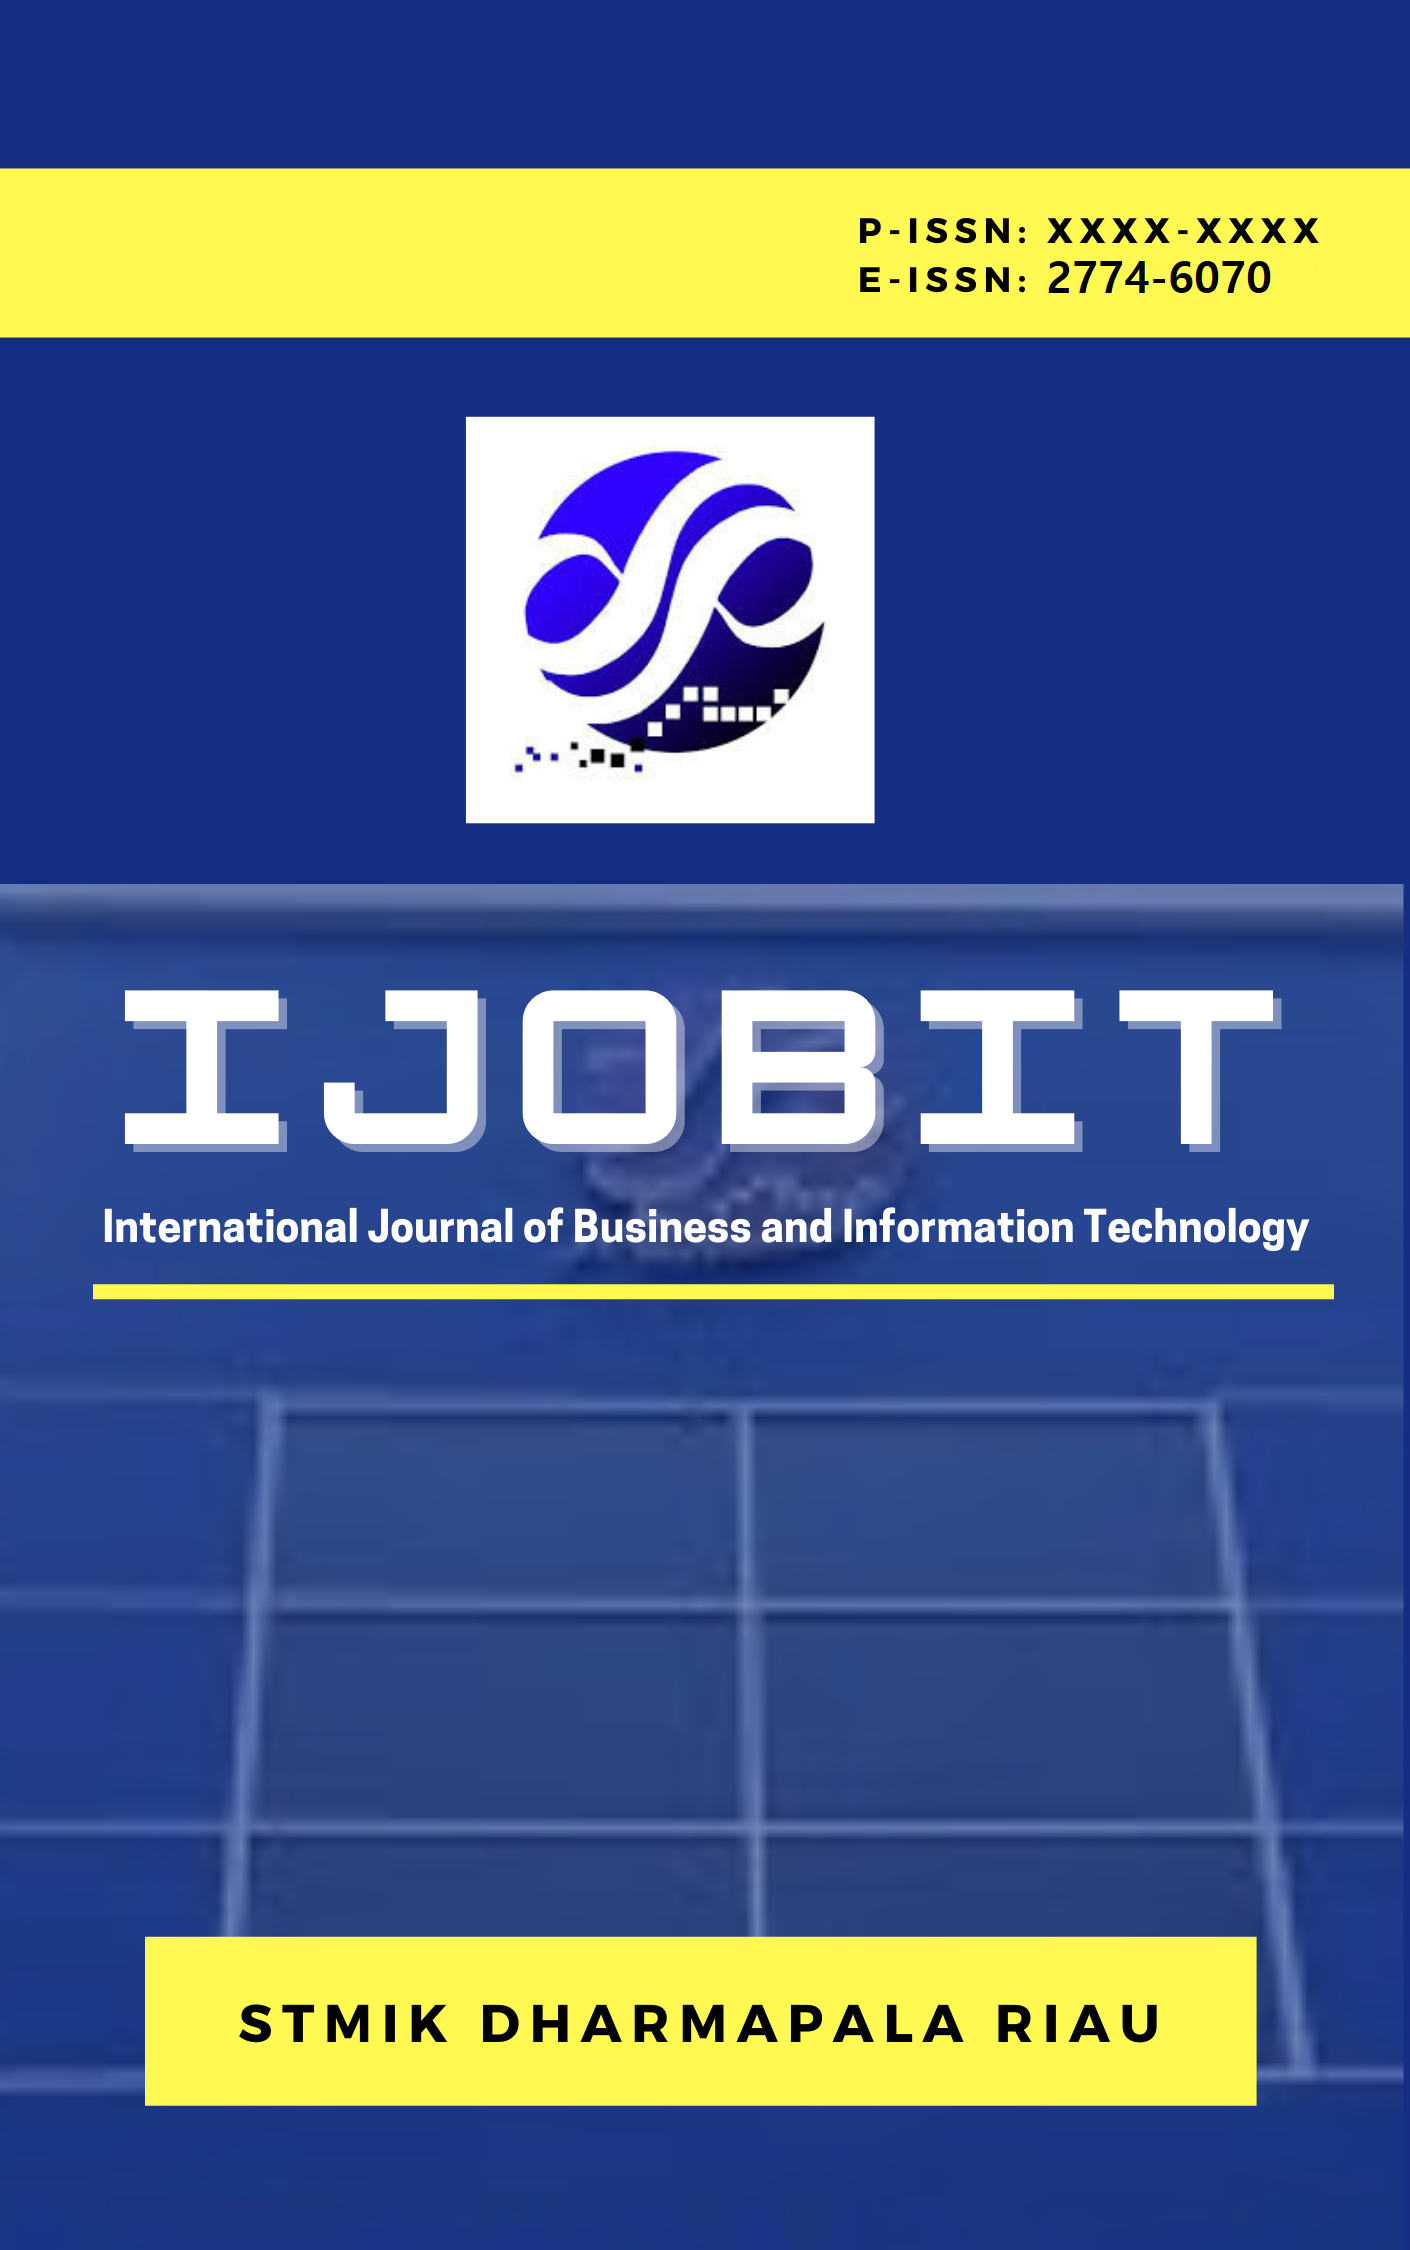 International Journal of Business and Information Technology